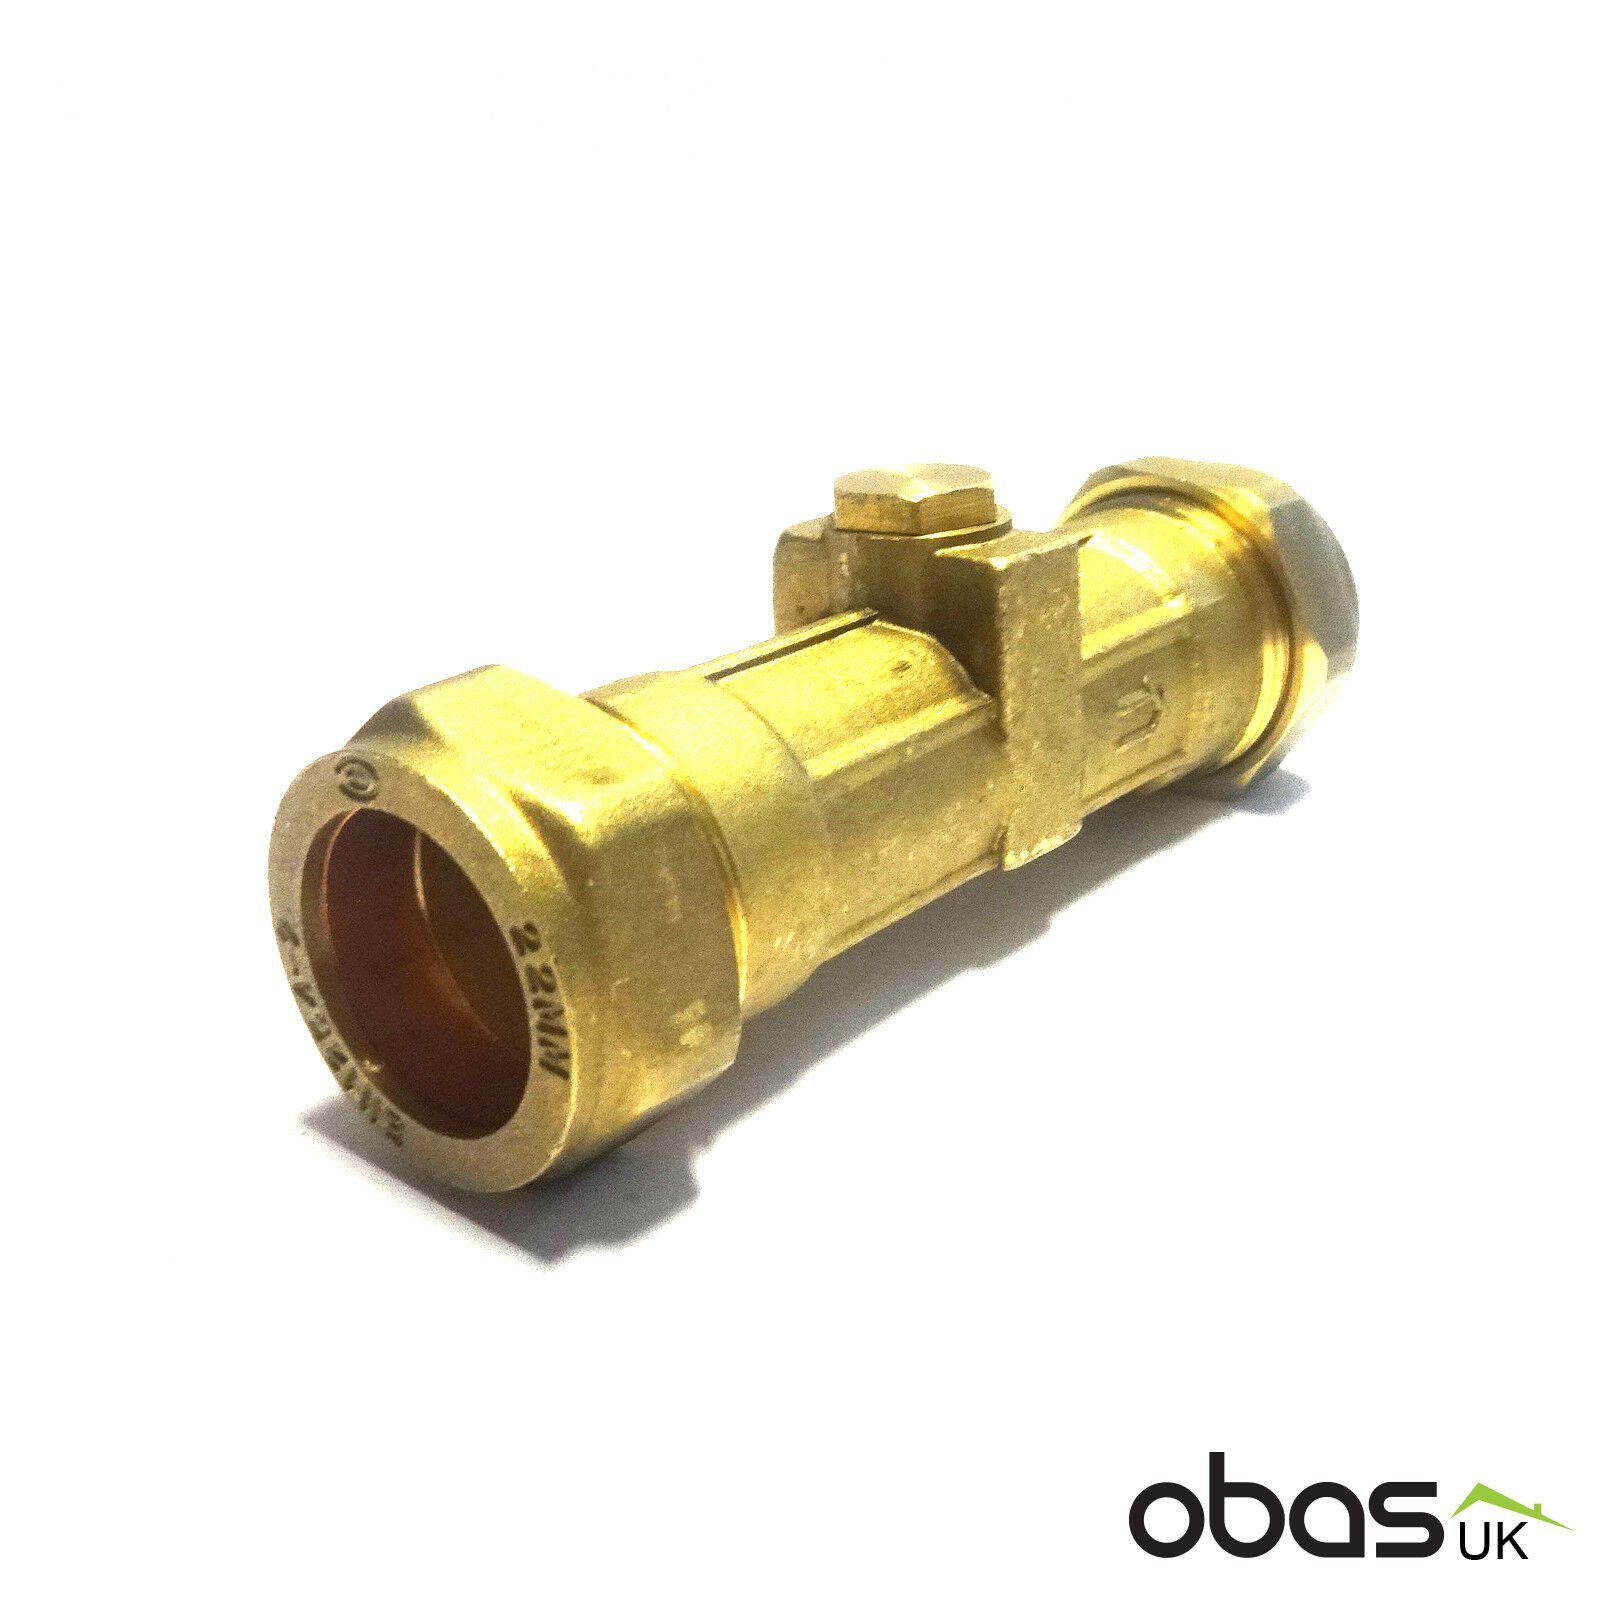 DZR Compression 15mm Double Check Valve PACK OF 5